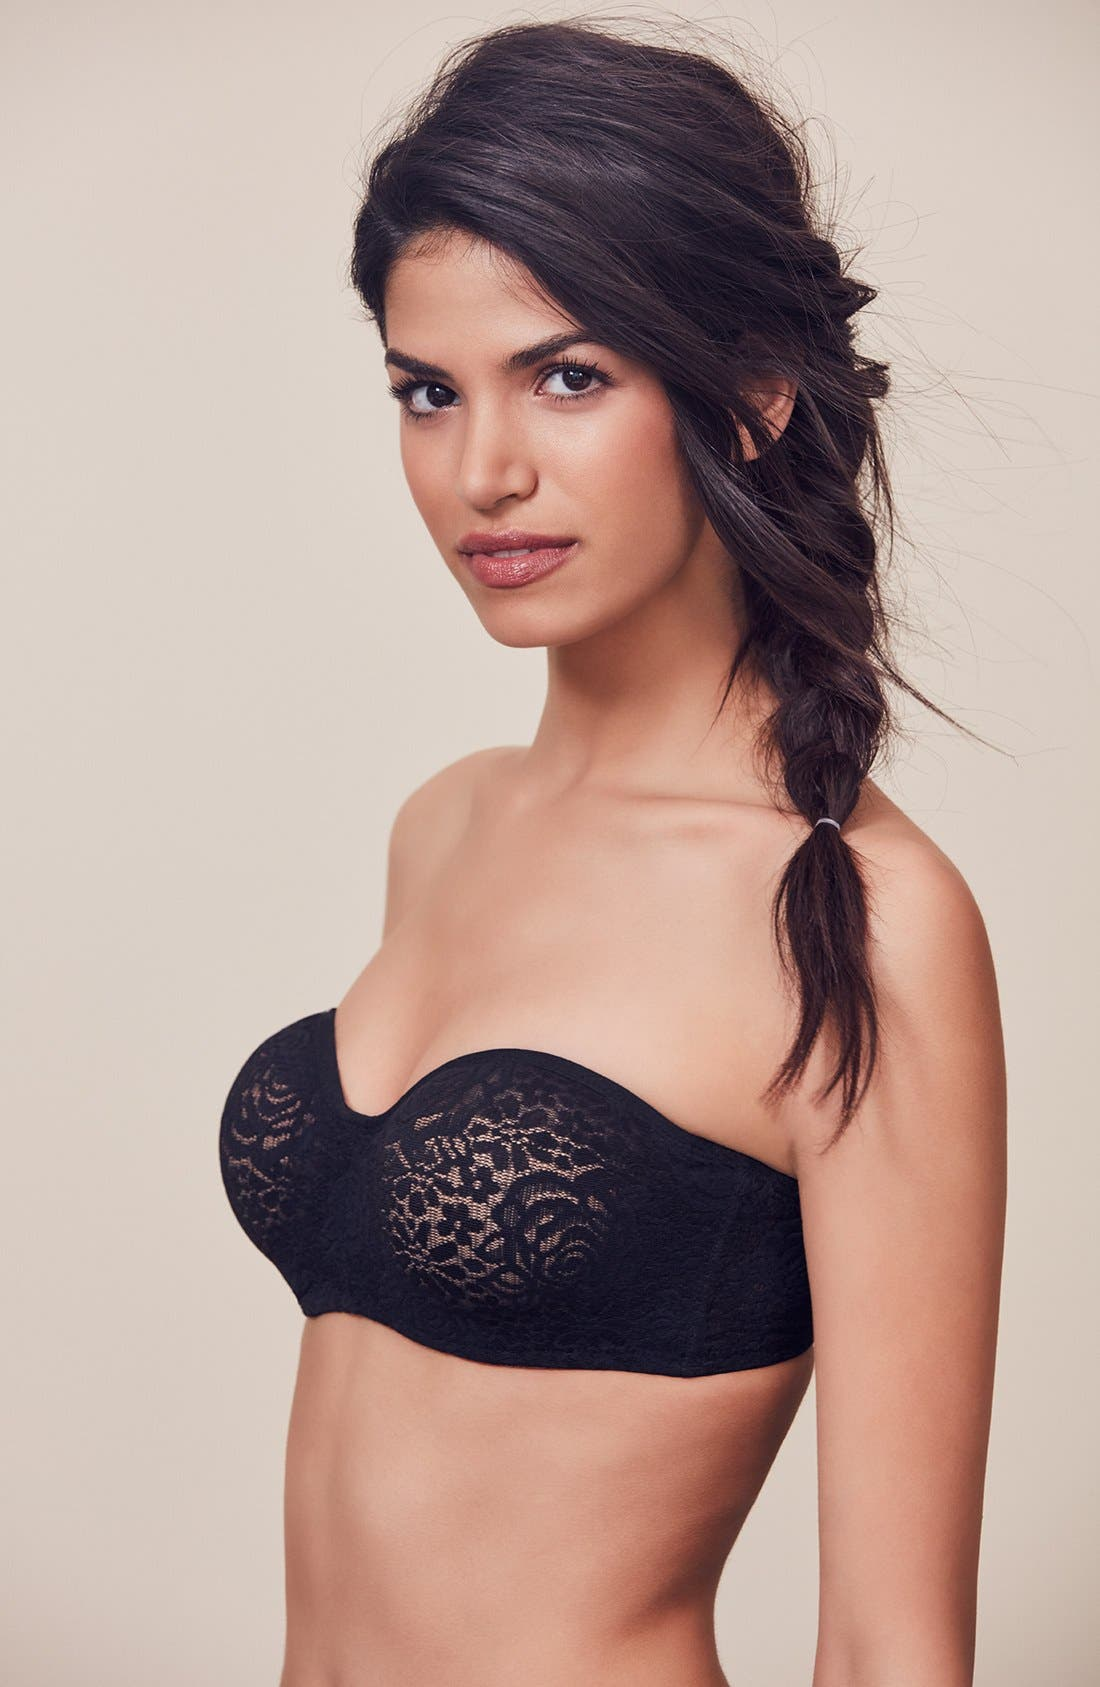 'Halo' Convertible Underwire Bra,                             Alternate thumbnail 5, color,                             Black